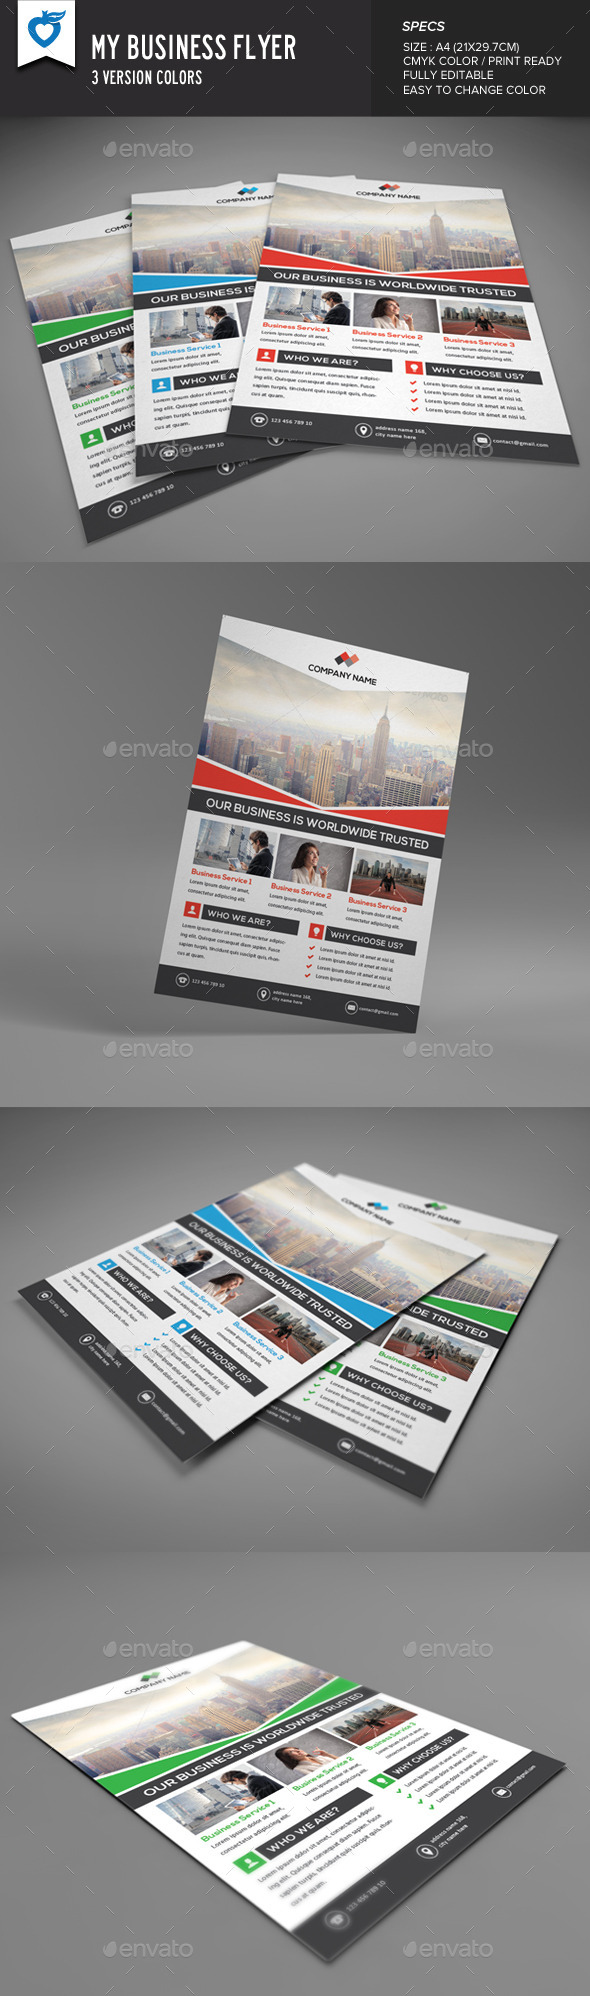 GraphicRiver My Business Flyer 9724322